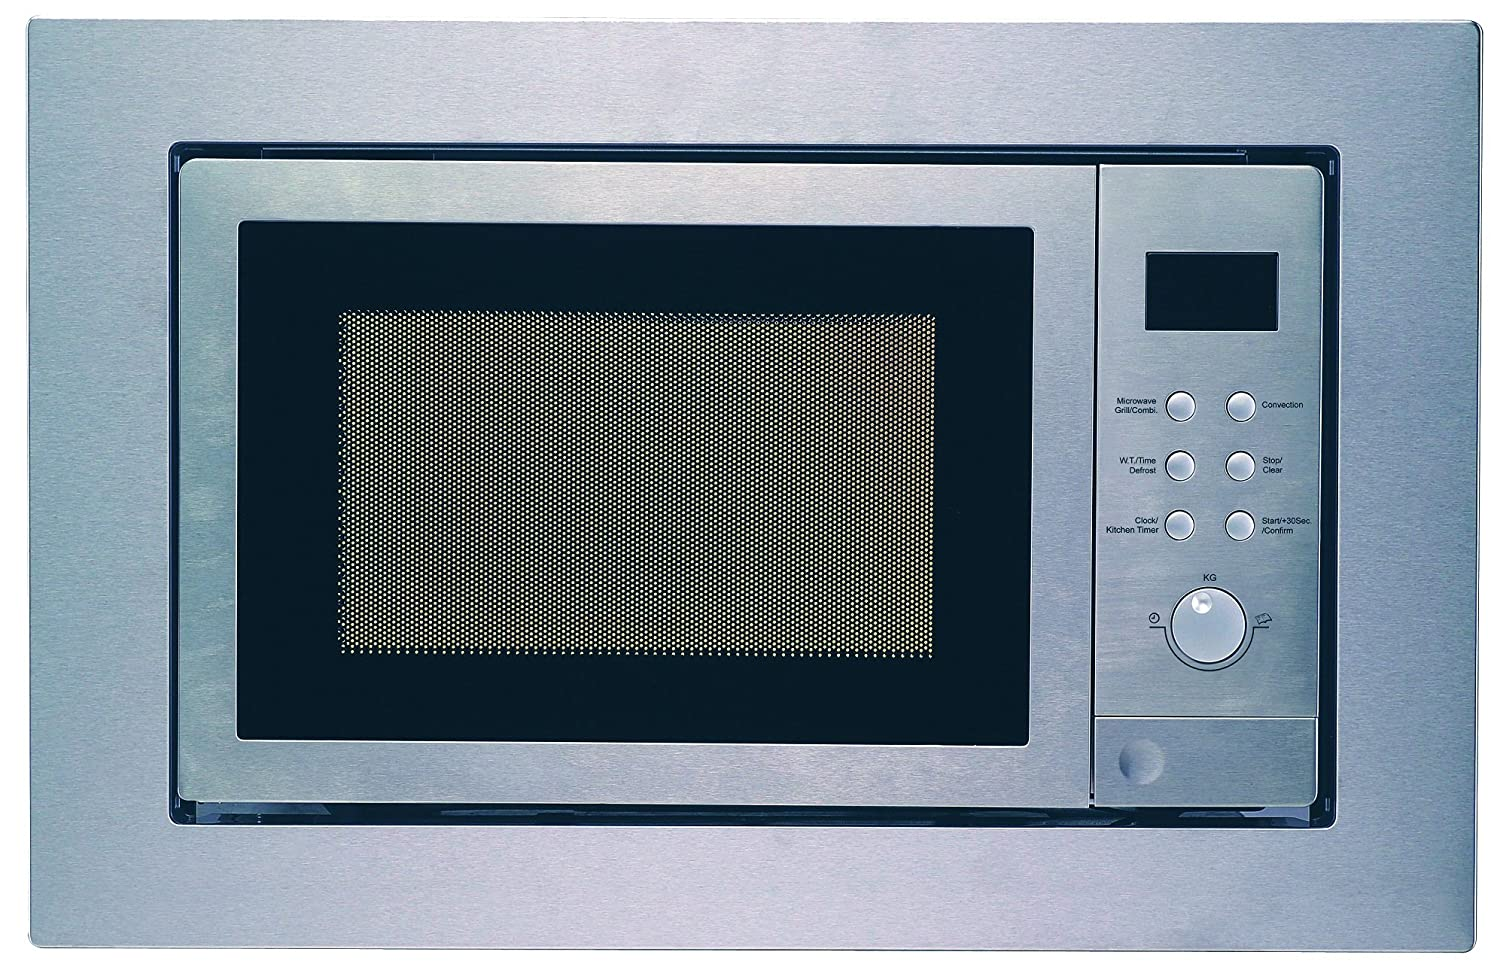 Cookology Built-in Combi Microwave Oven & Grill | IMOG25LSS Stainless Steel 25 Litre